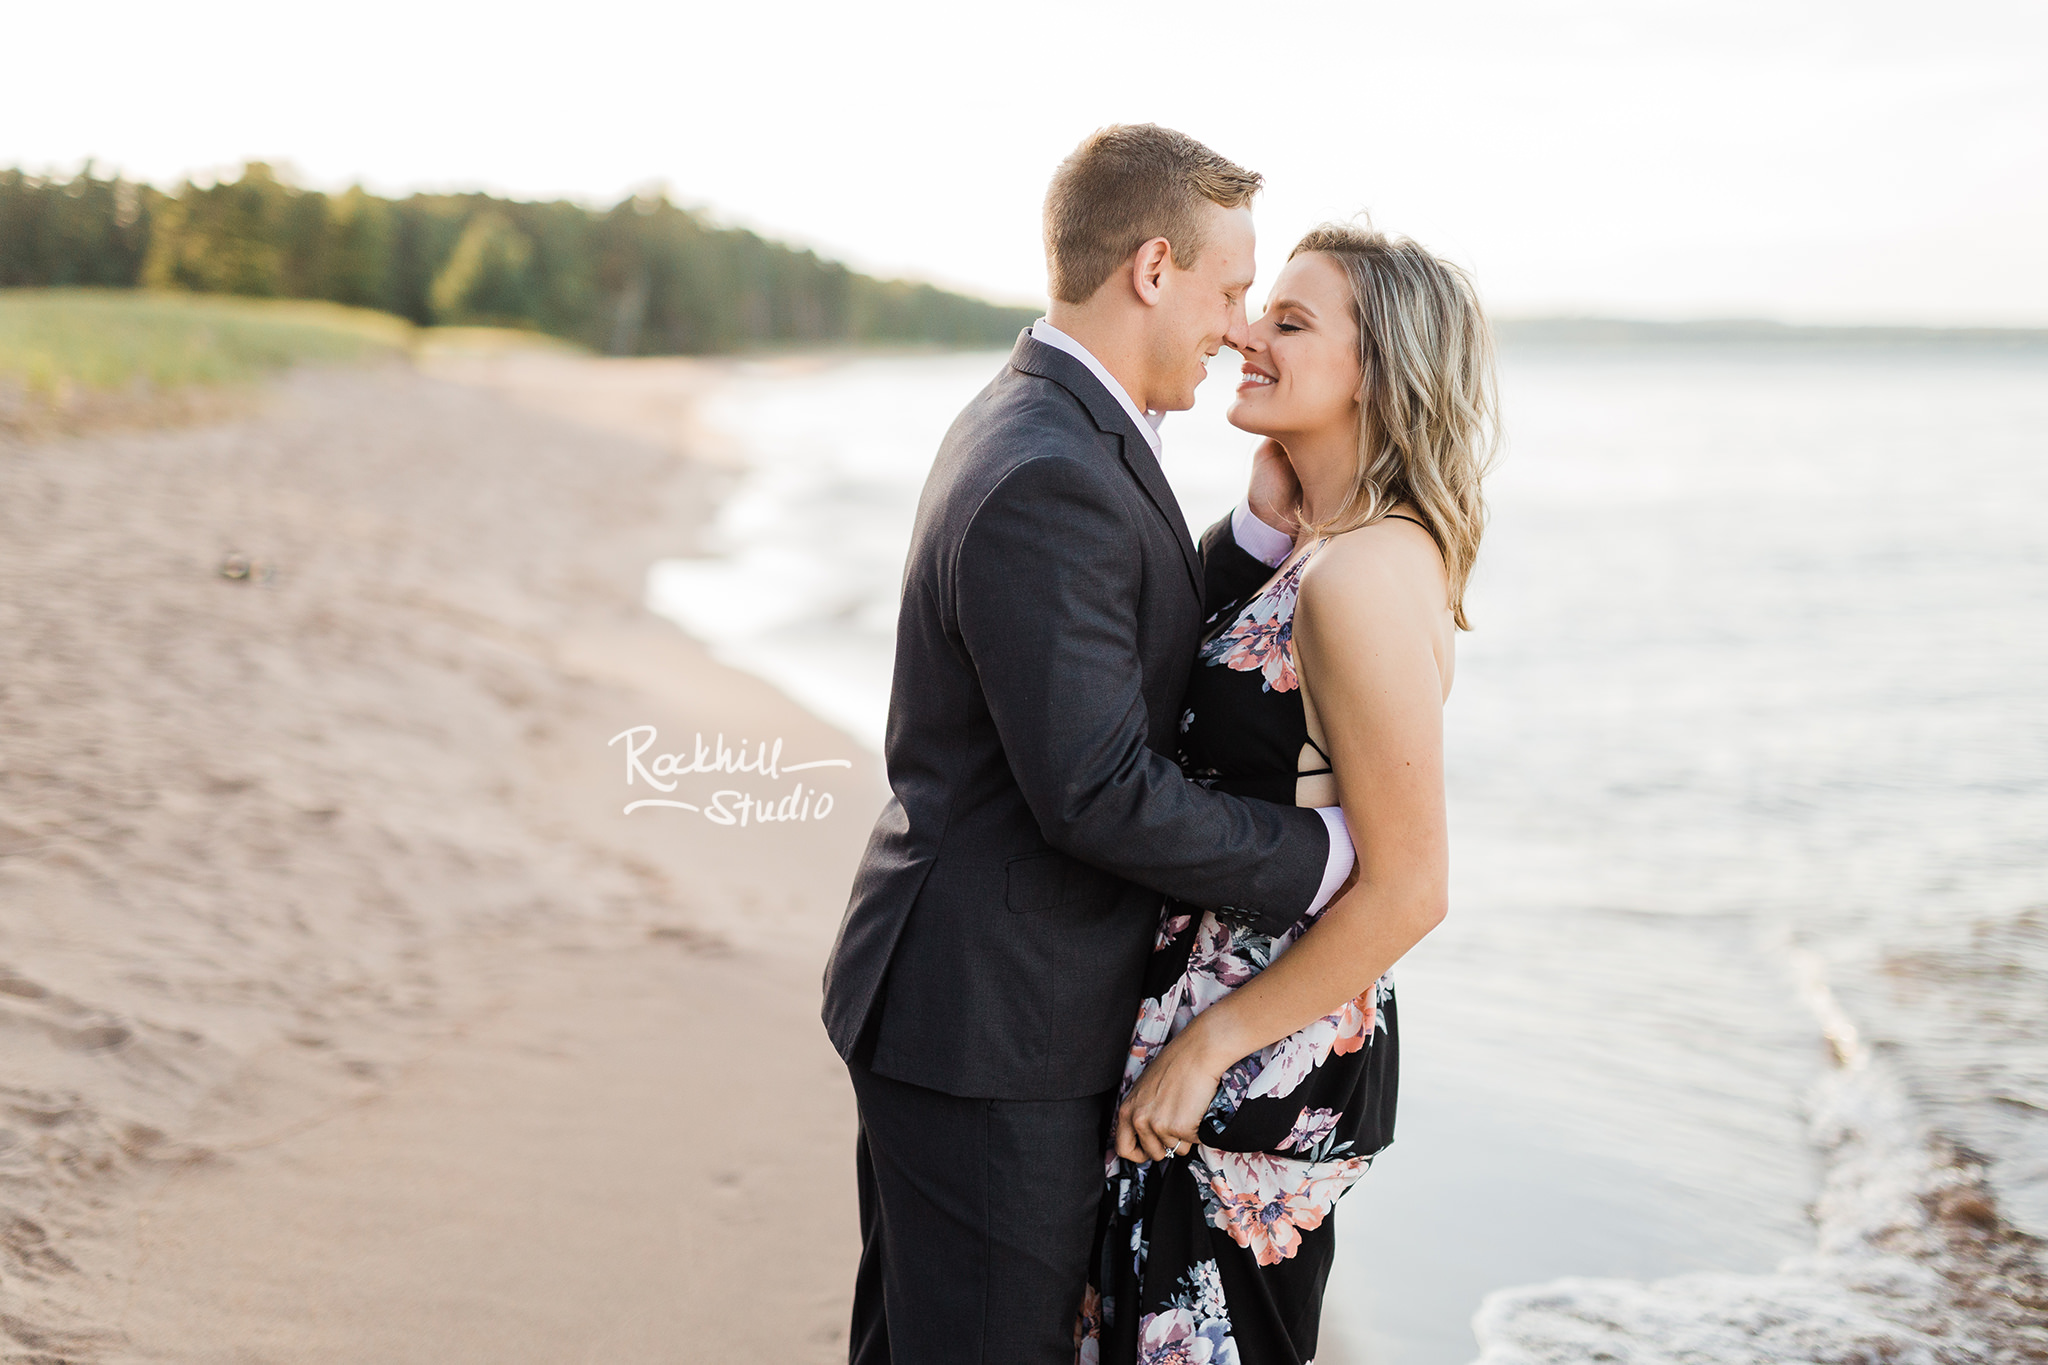 Traverse City Michigan Wedding Photography Rockhill Studio